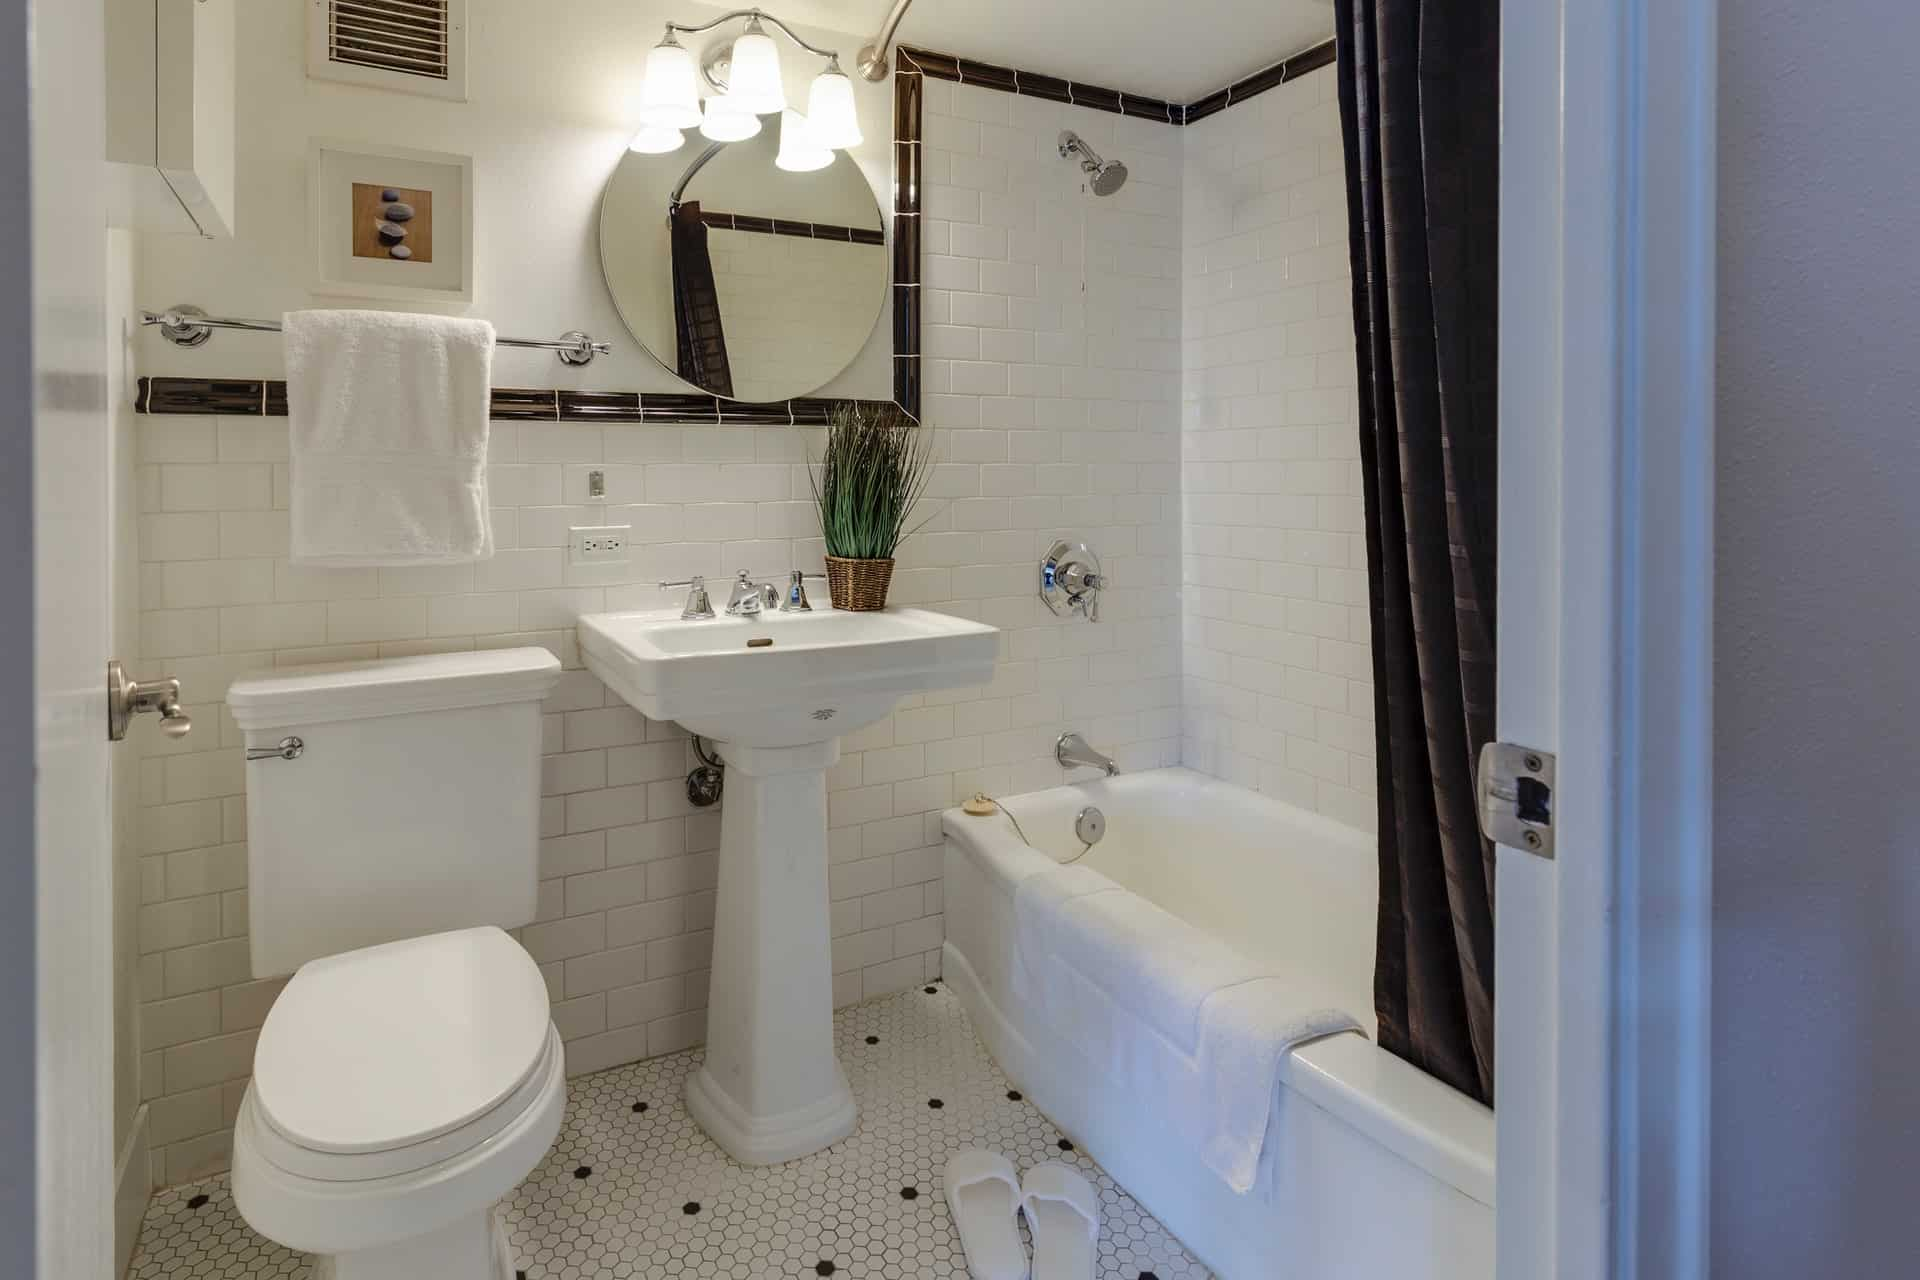 5x8 Bathroom Layout Ideas To Make The Most Of Your Space